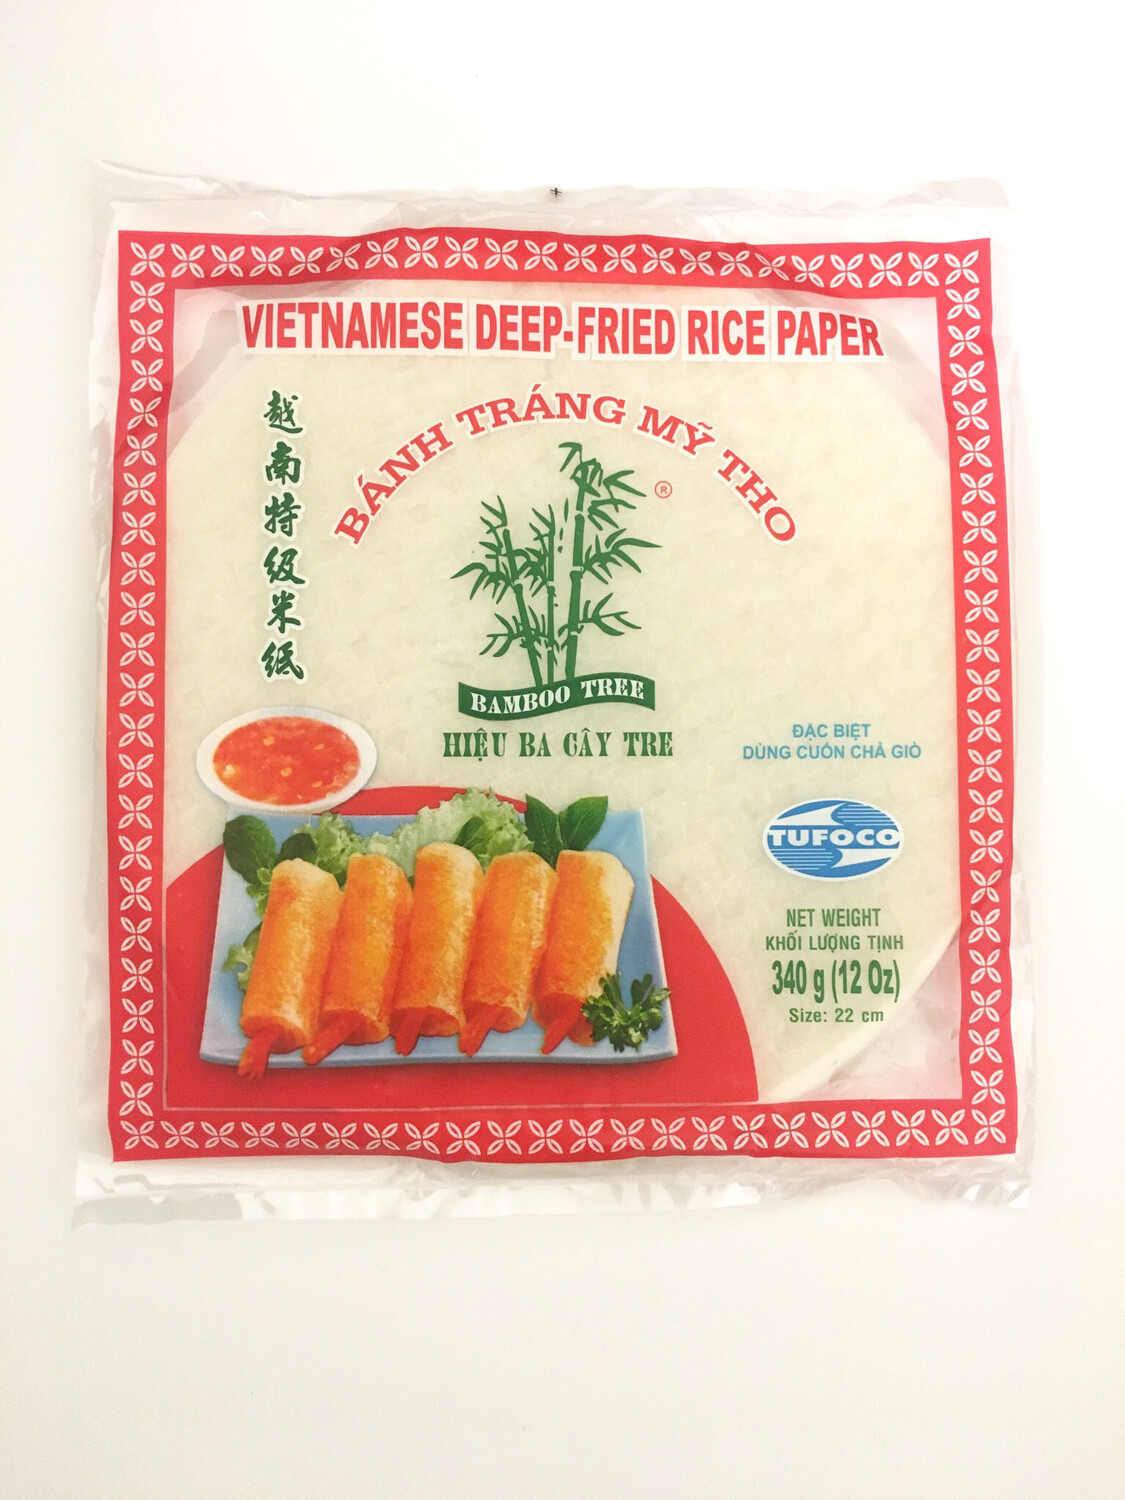 3 CAYTRE RICE PAPER ROUND 22CM FOR SPRING ROLL 44X340G